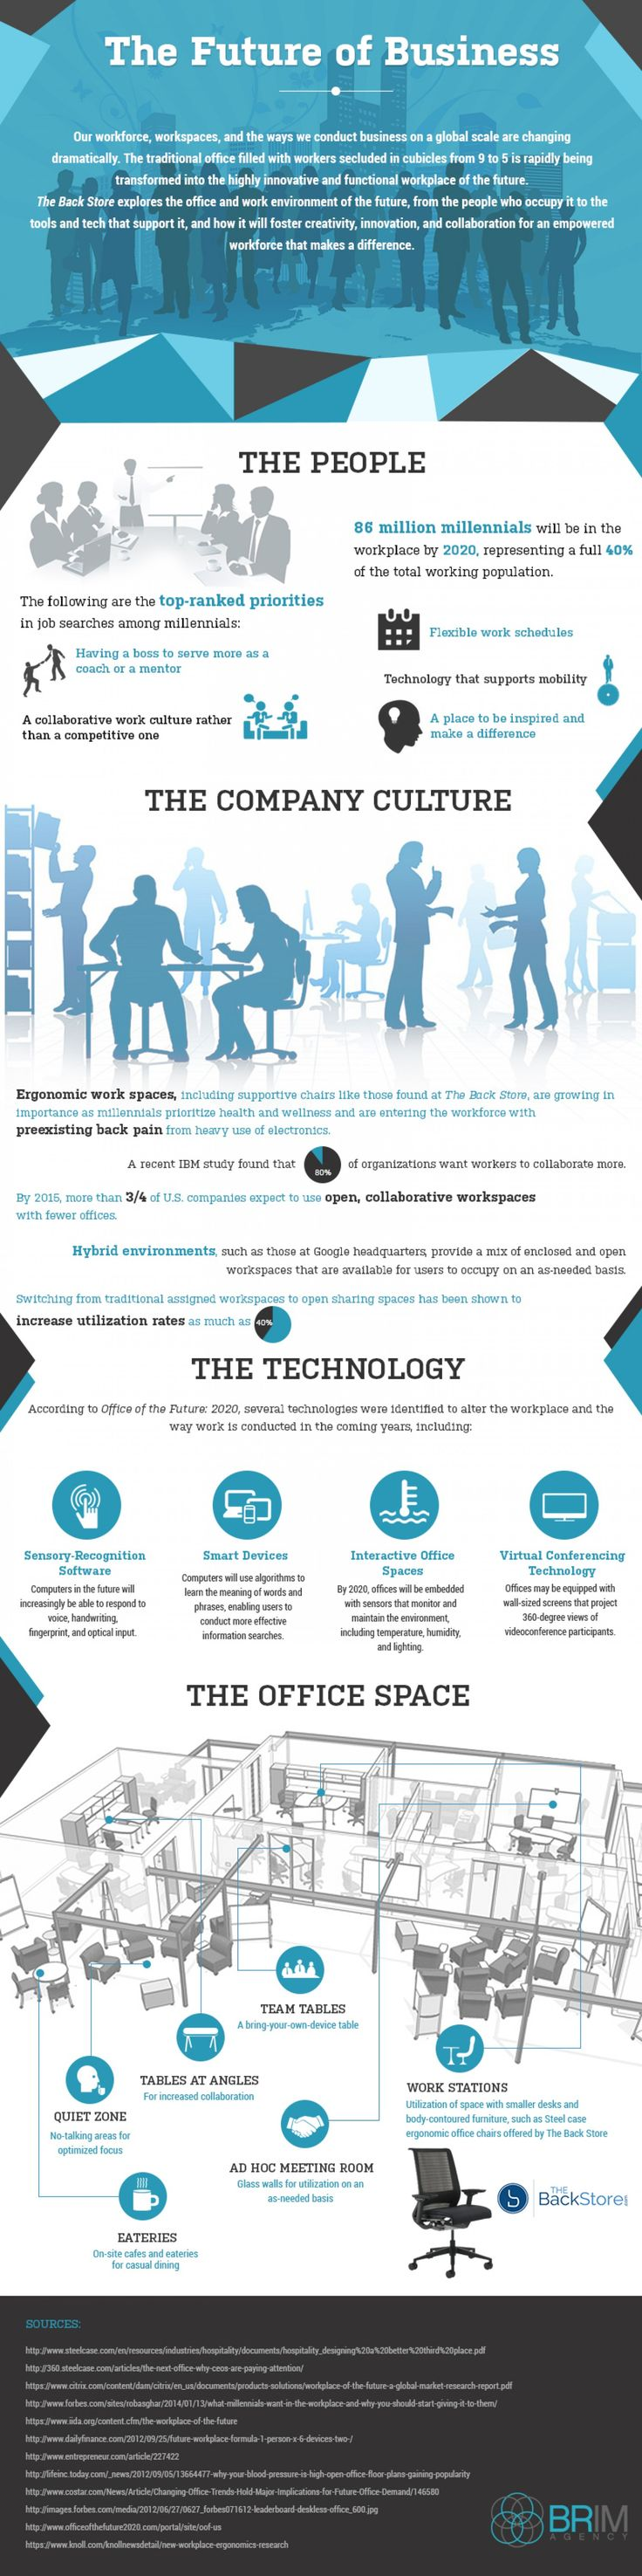 The Future of Business Infographic